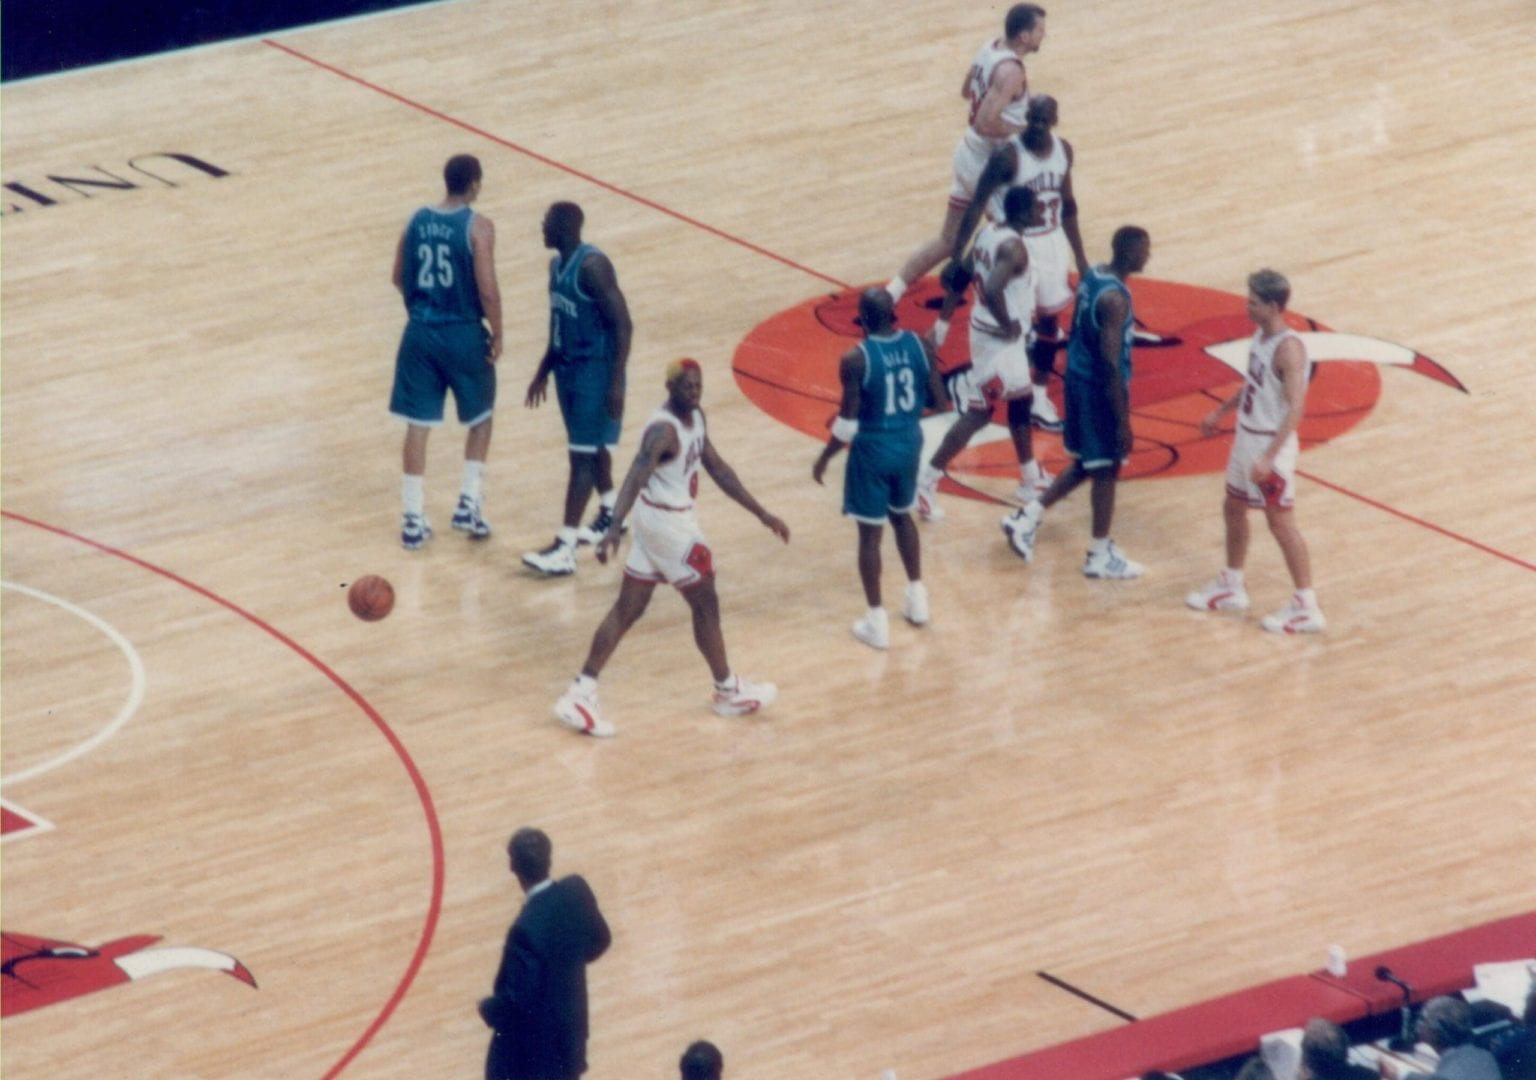 Basketball players inside the court